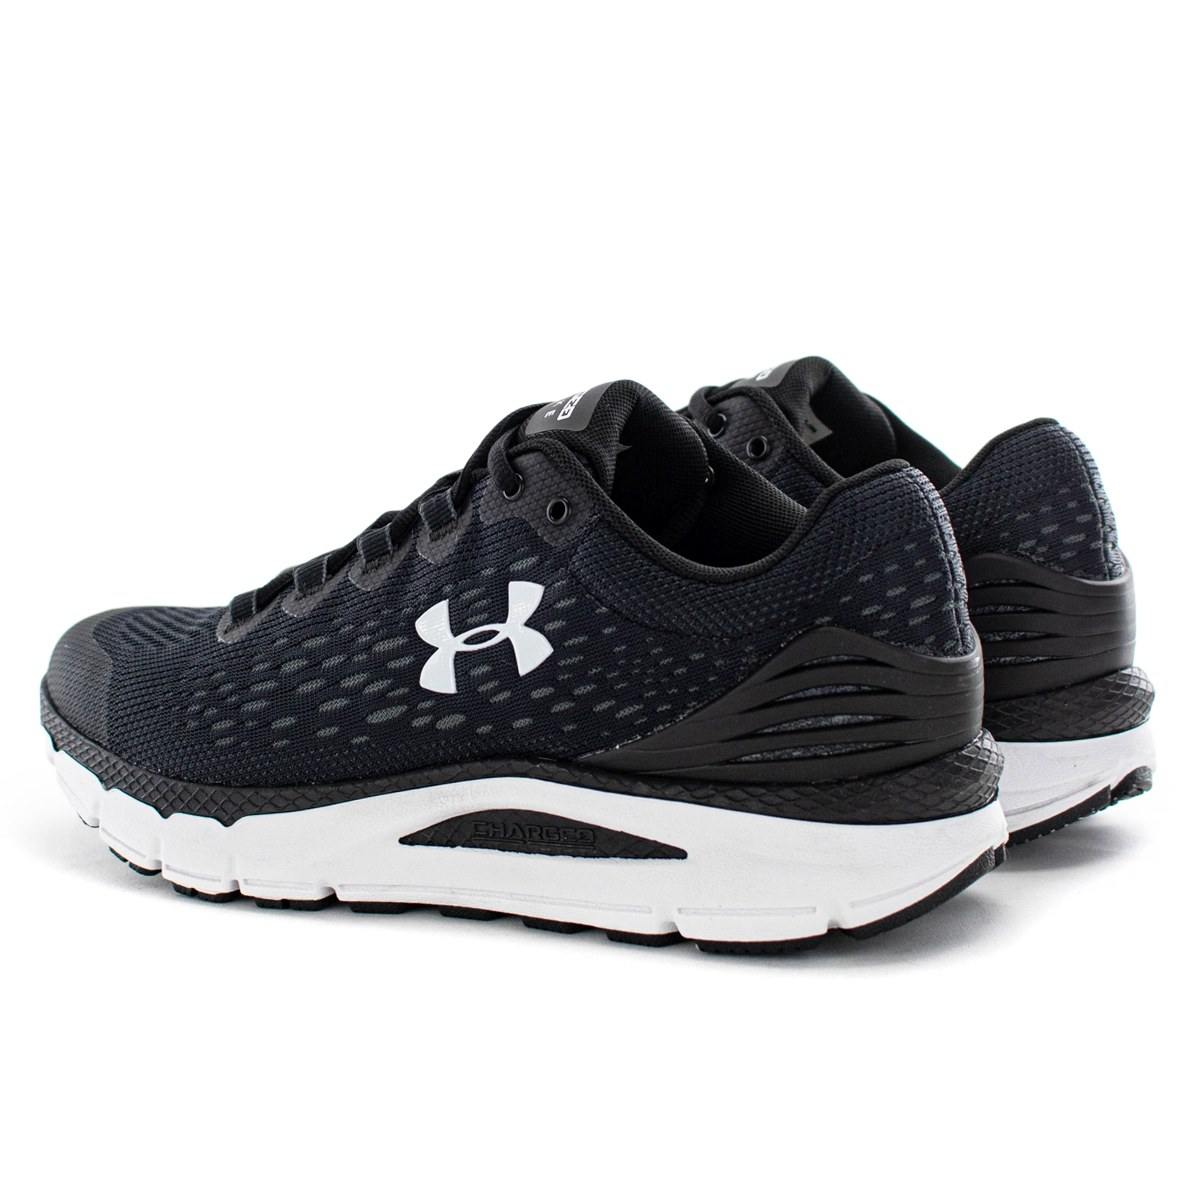 Under Armour Charged Intake 4 3022591-001-